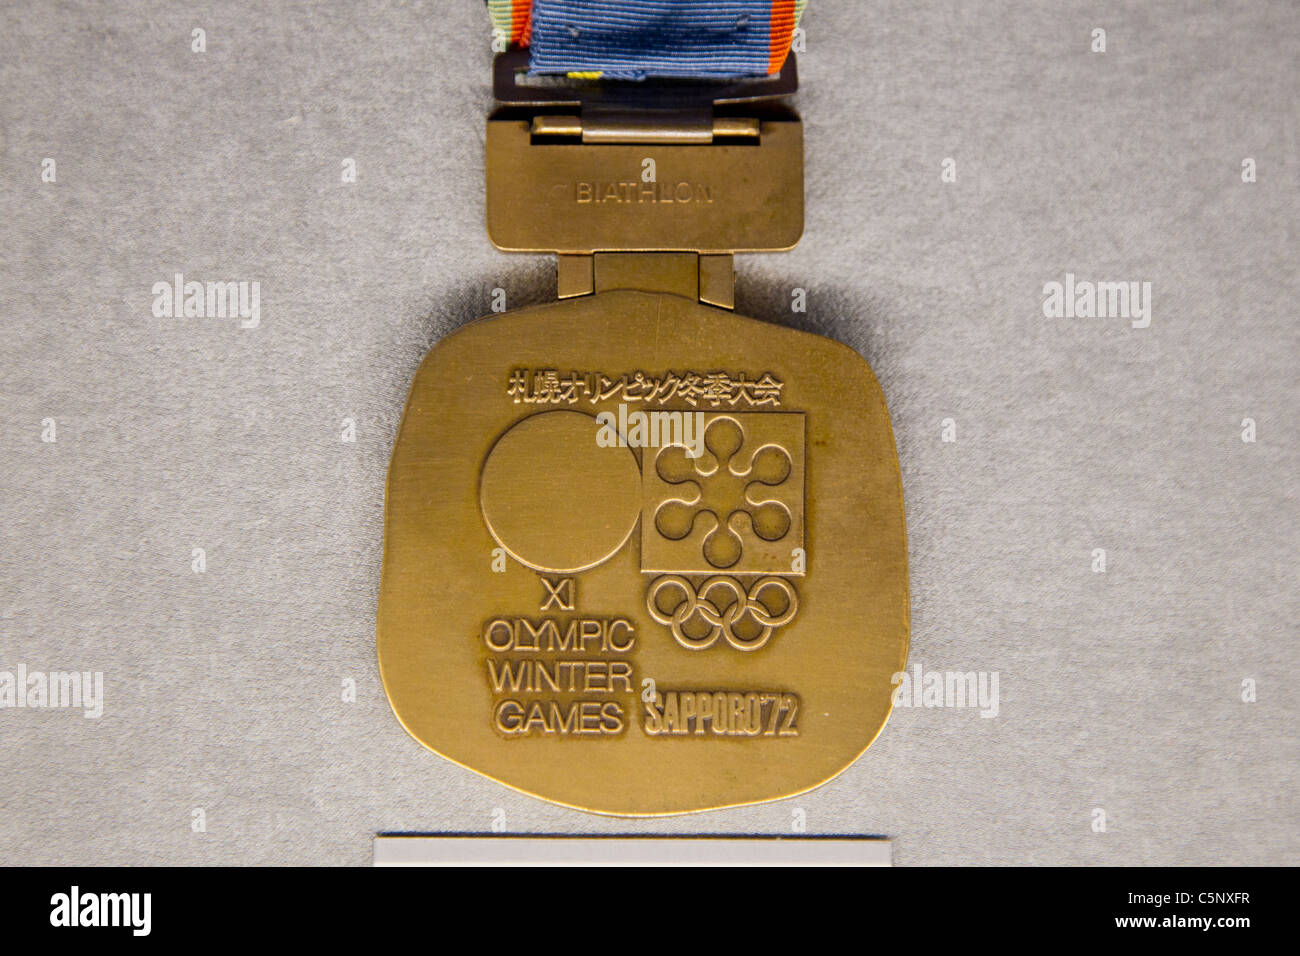 Bronze medal for Sapporo winter Olympics : History of the Olympics in Japan. at Japan Mint in Osaka. - Stock Image